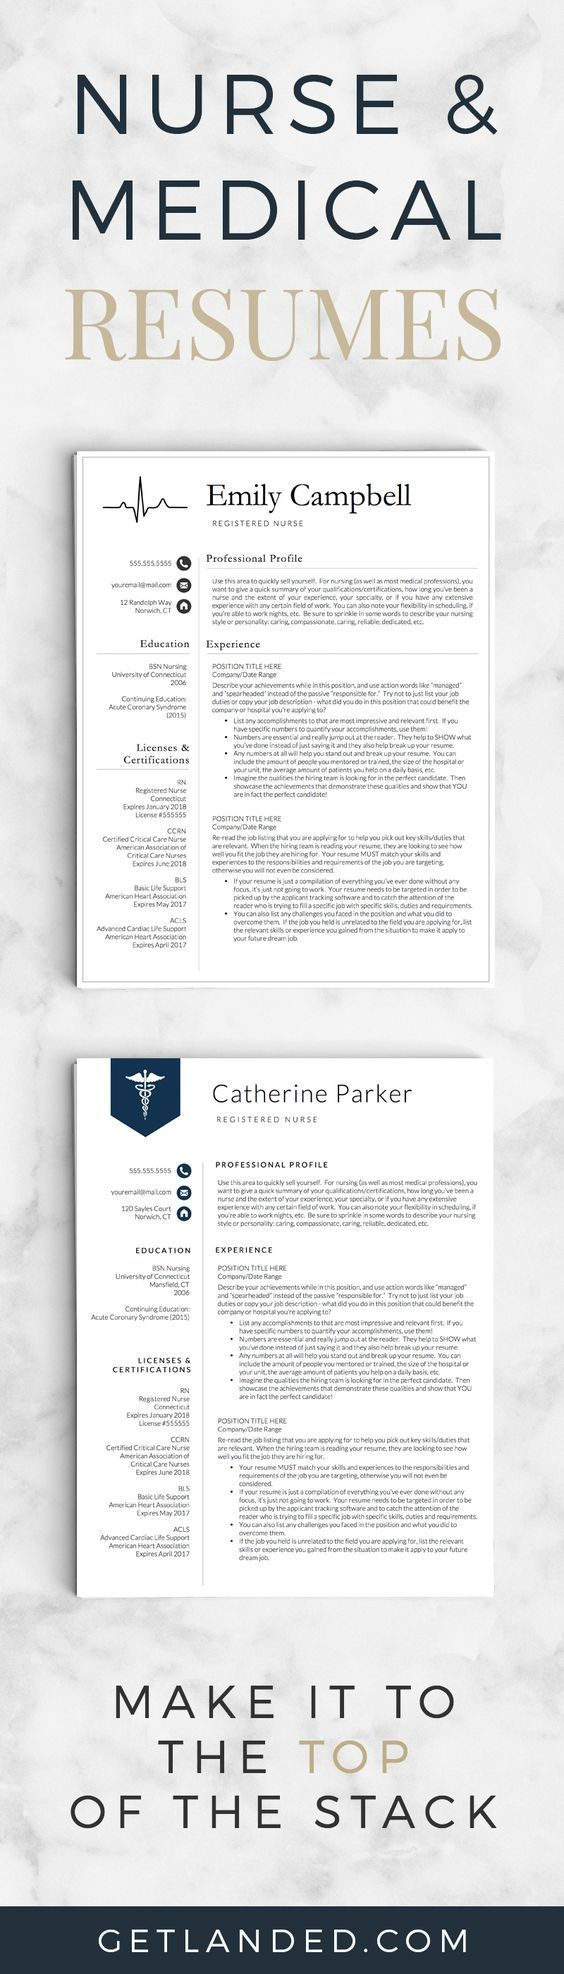 Nurse resume templates | Medical resumes | Resume templates ...